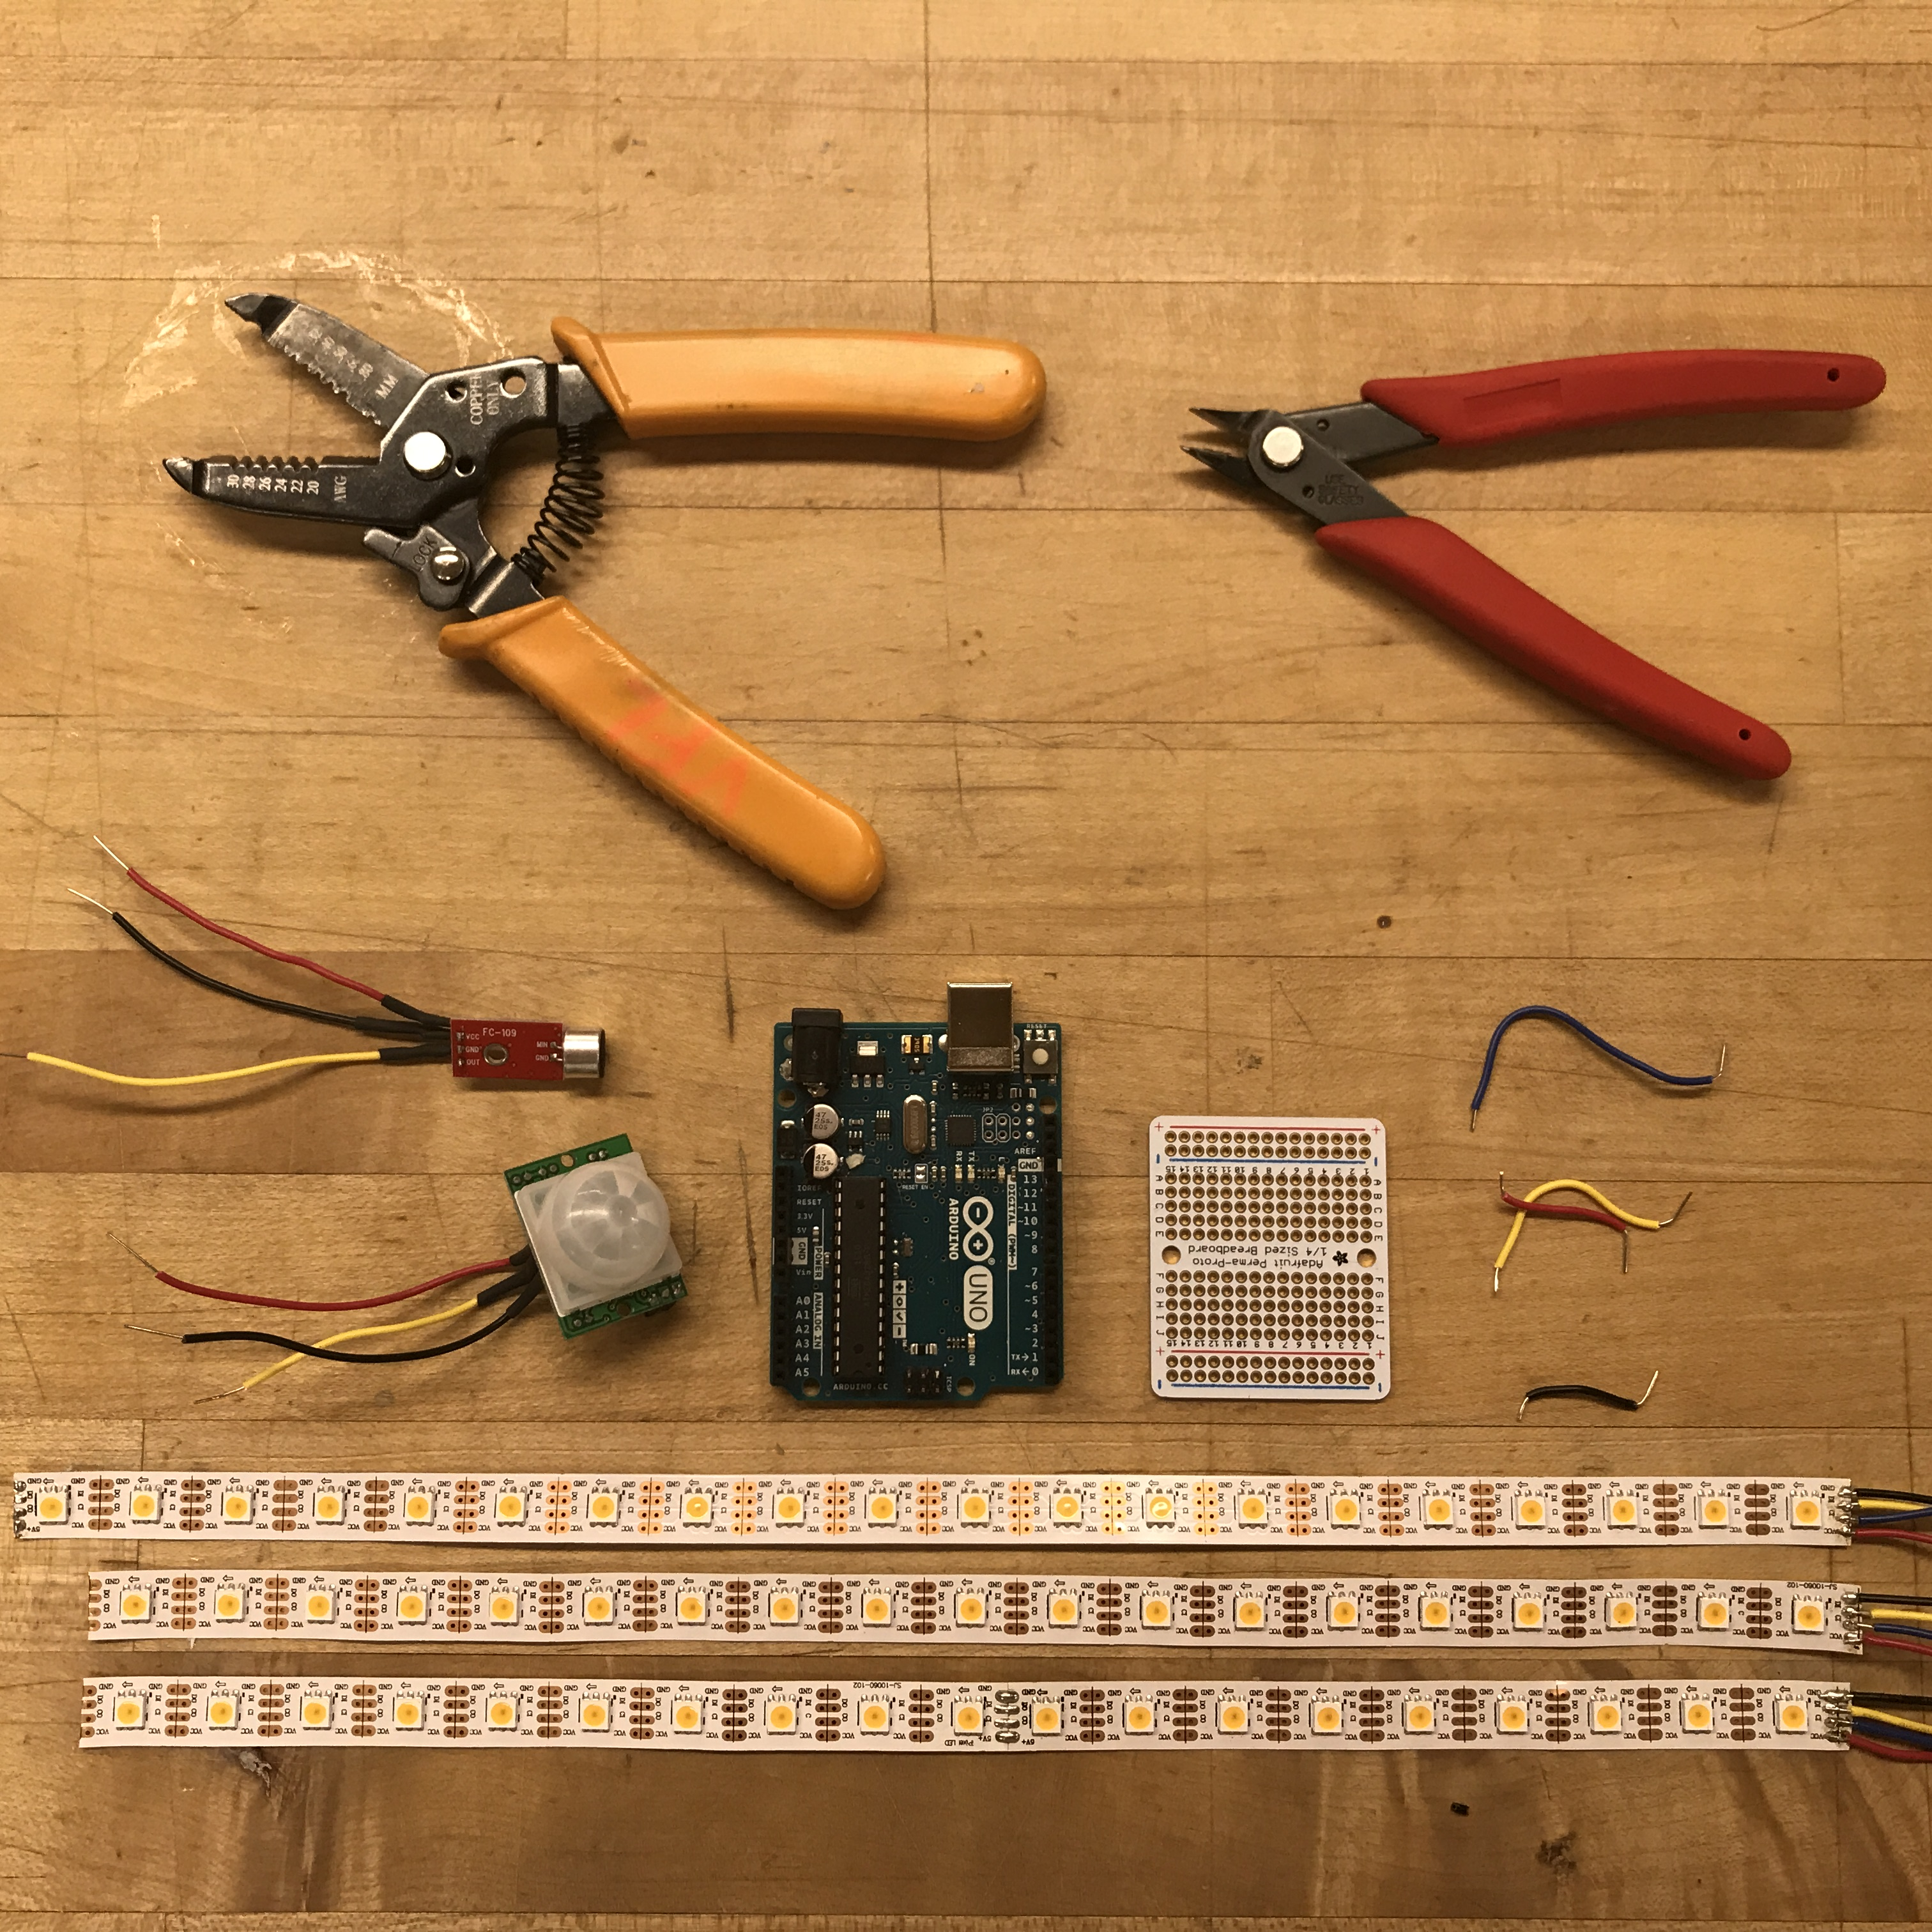 Picture of Soldering and Connecting Circuit